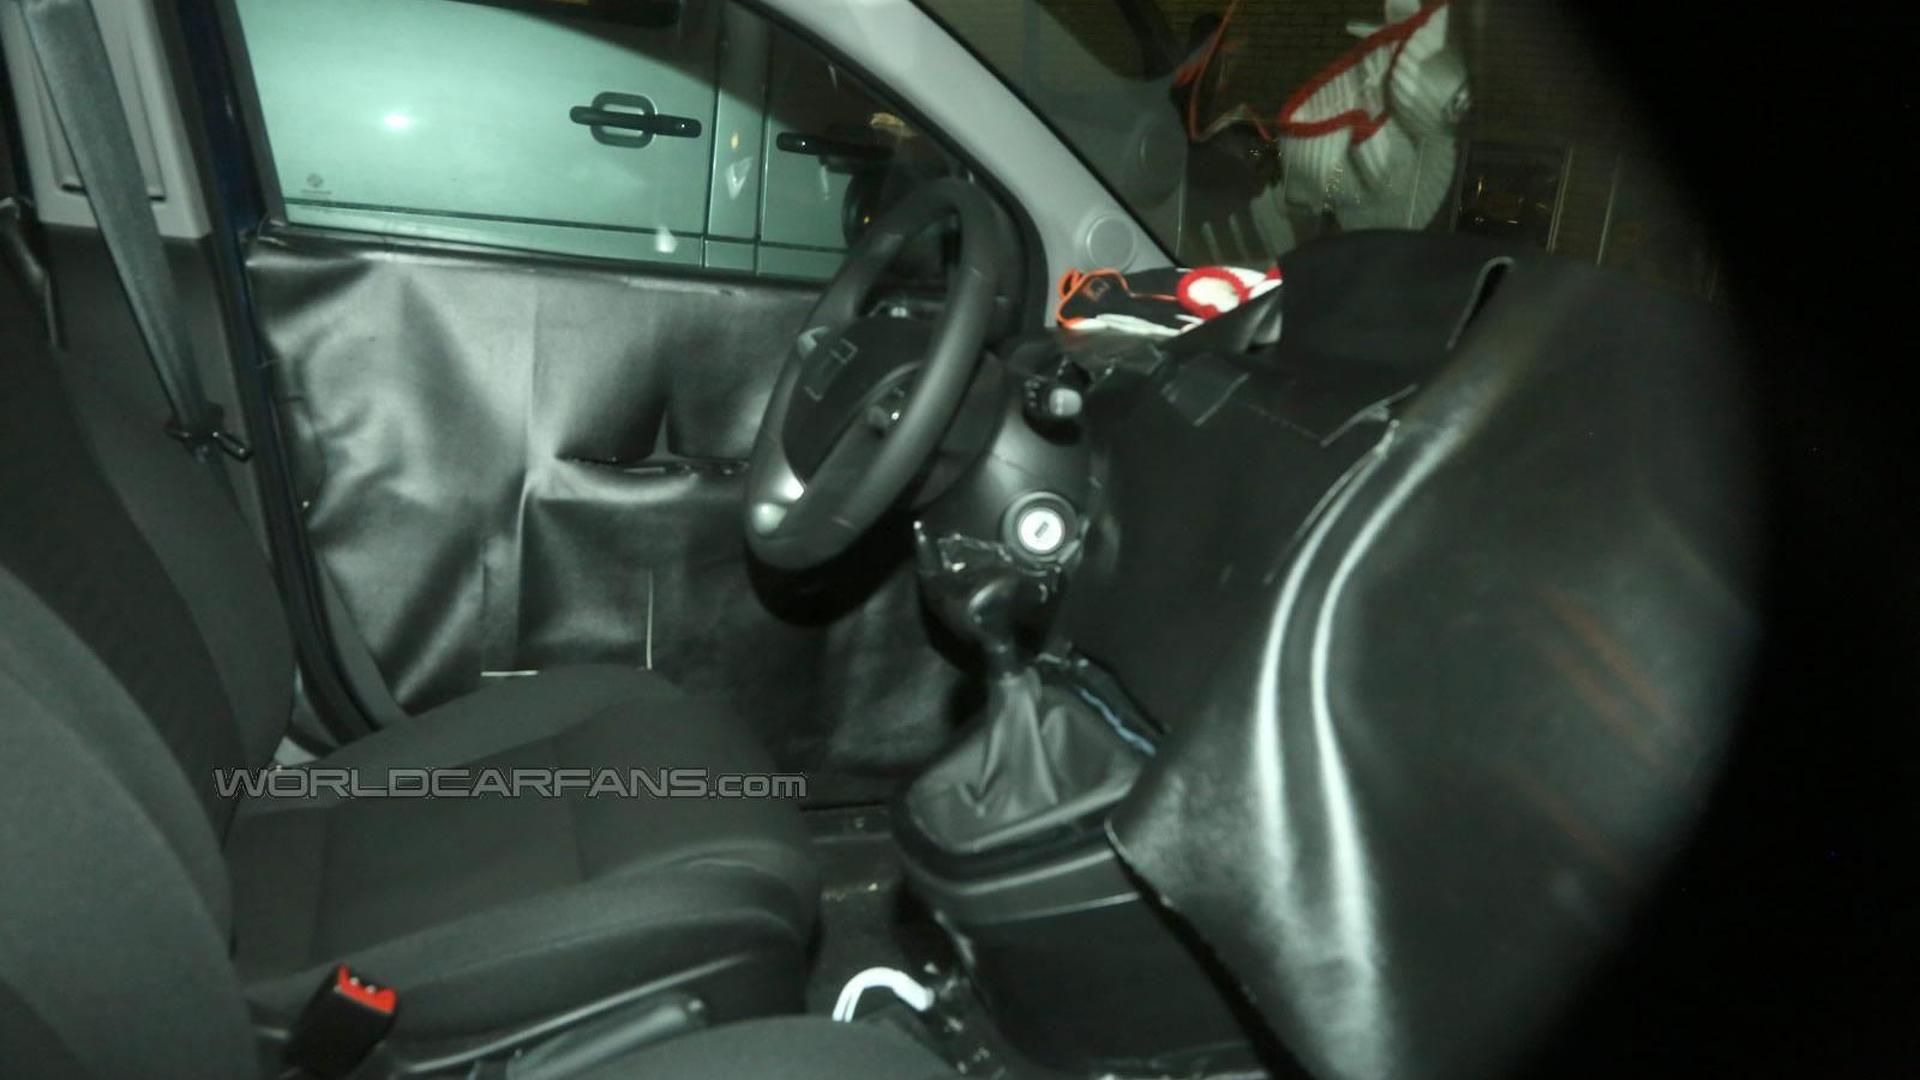 Lancia Ypsilon facelift spied inside and out near the Arctic Circle